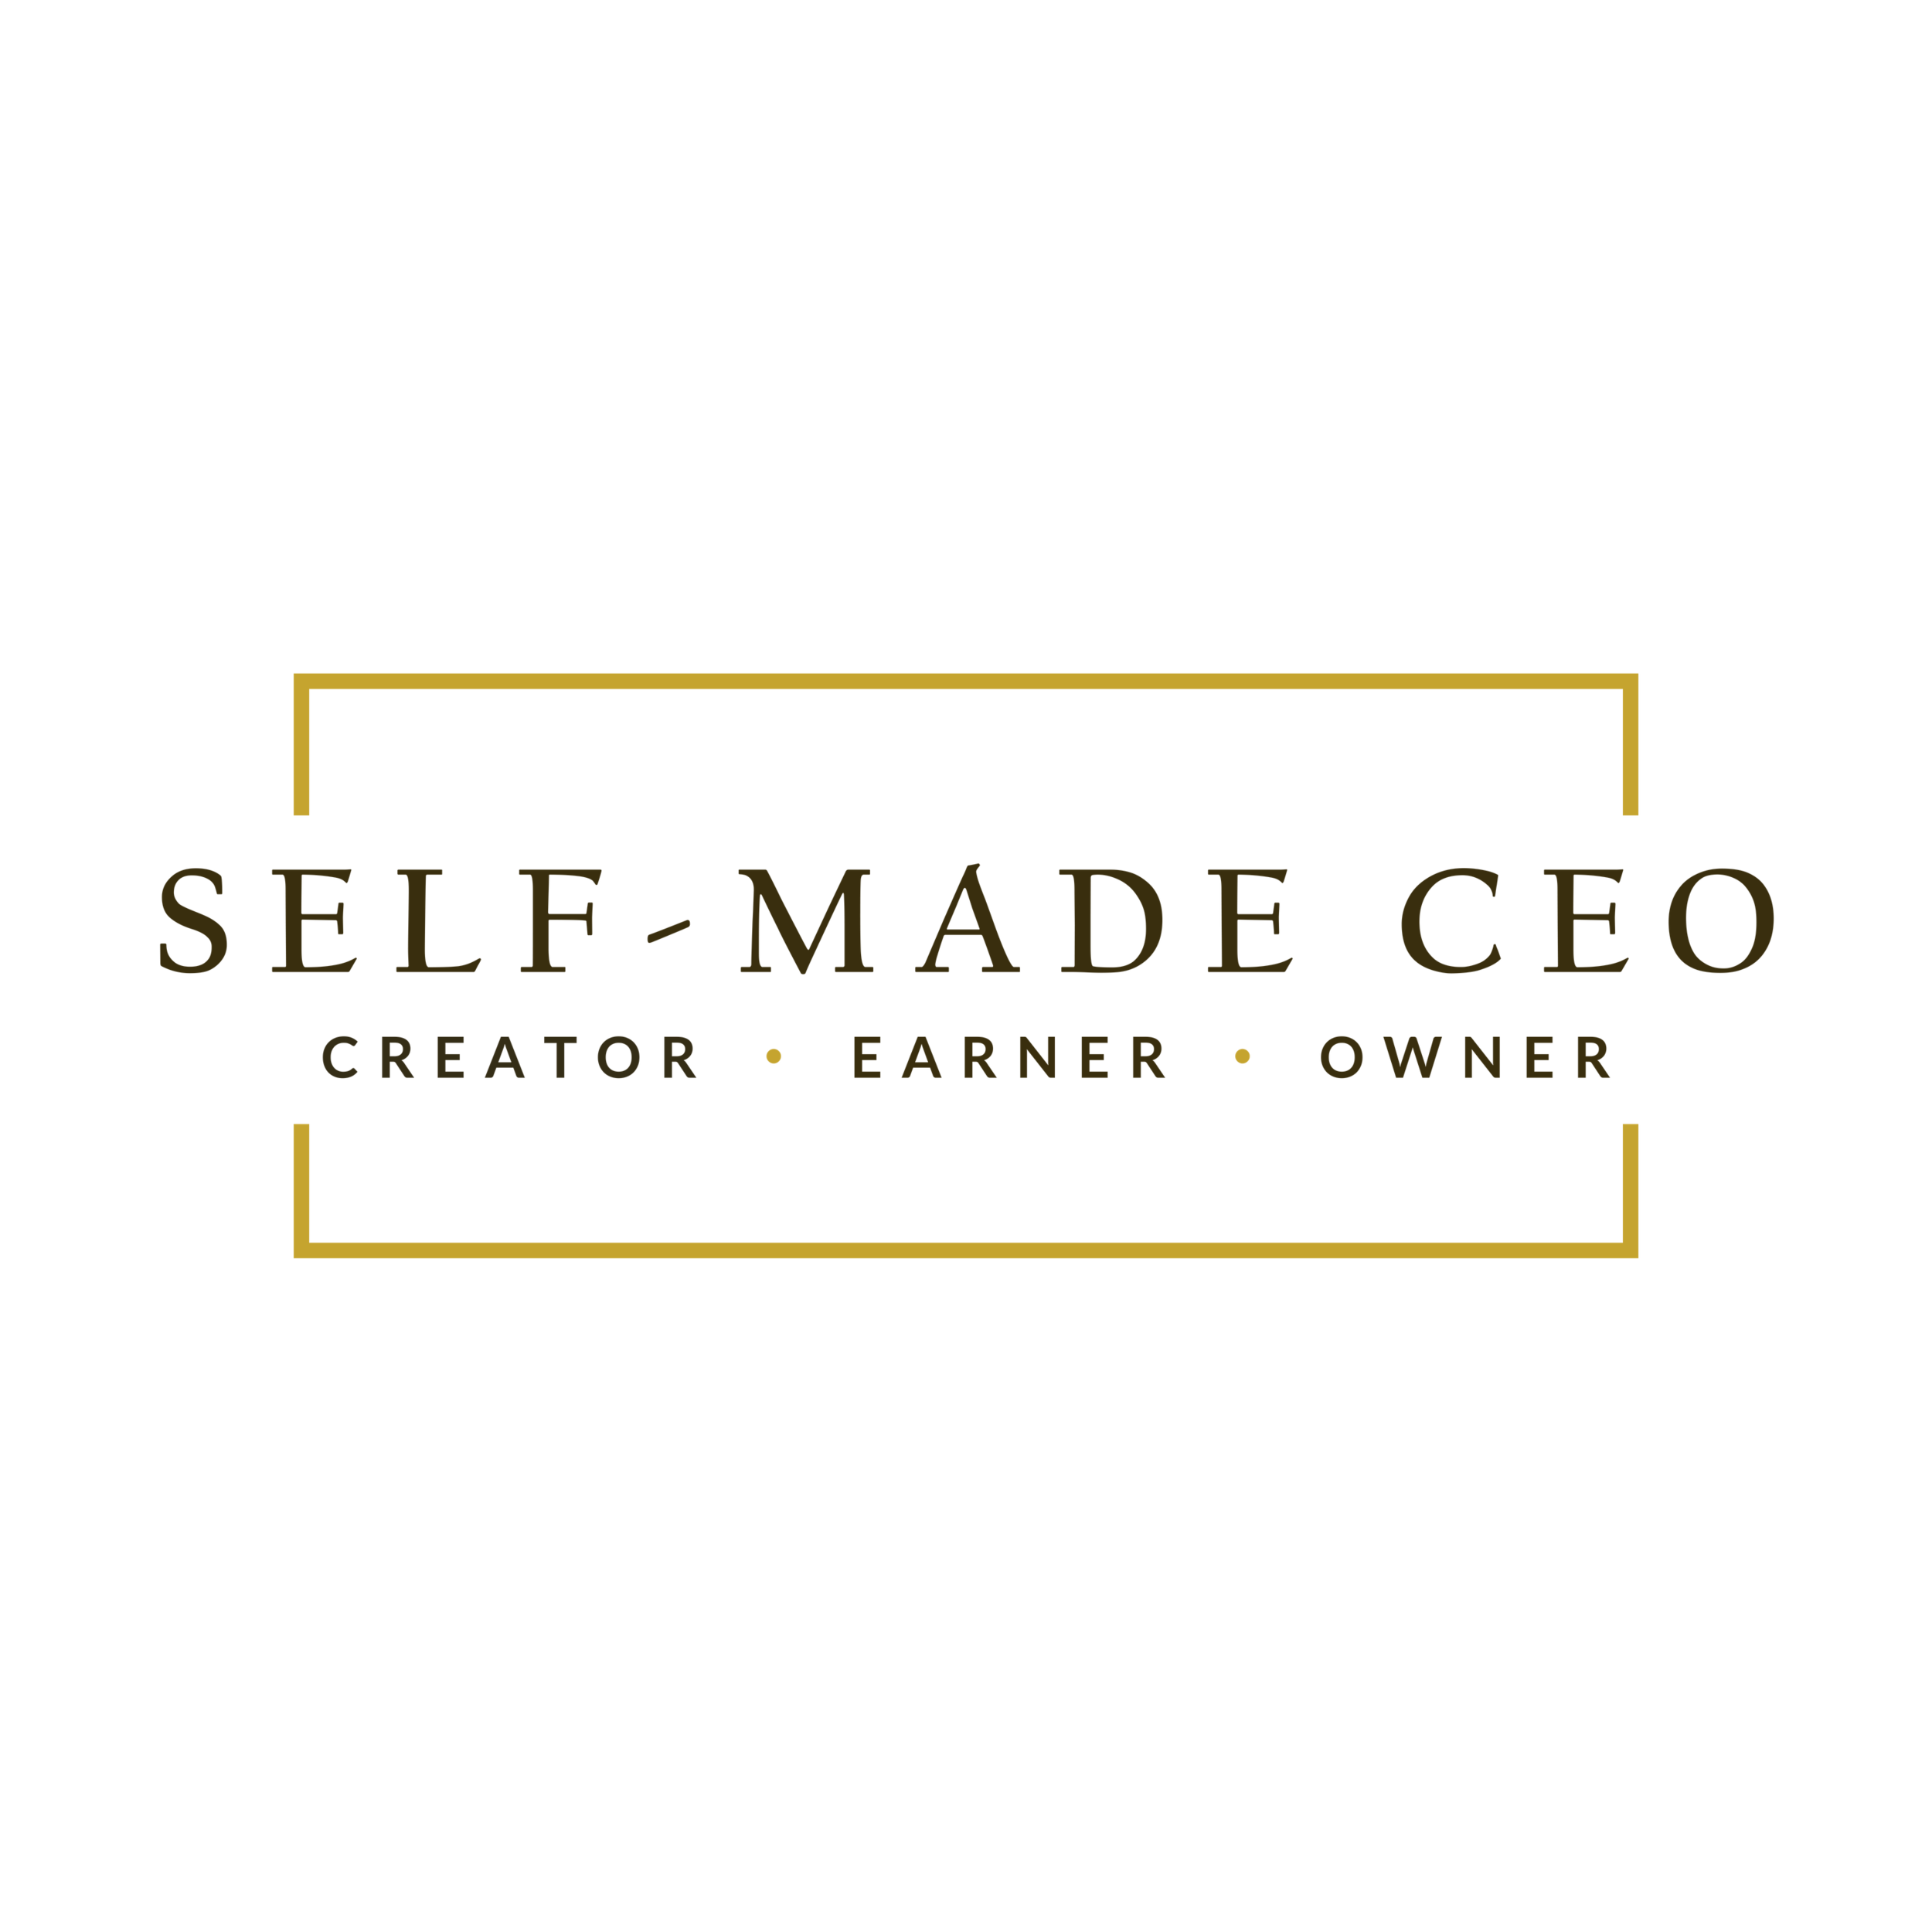 Copy of Self-Made CEO logo.png